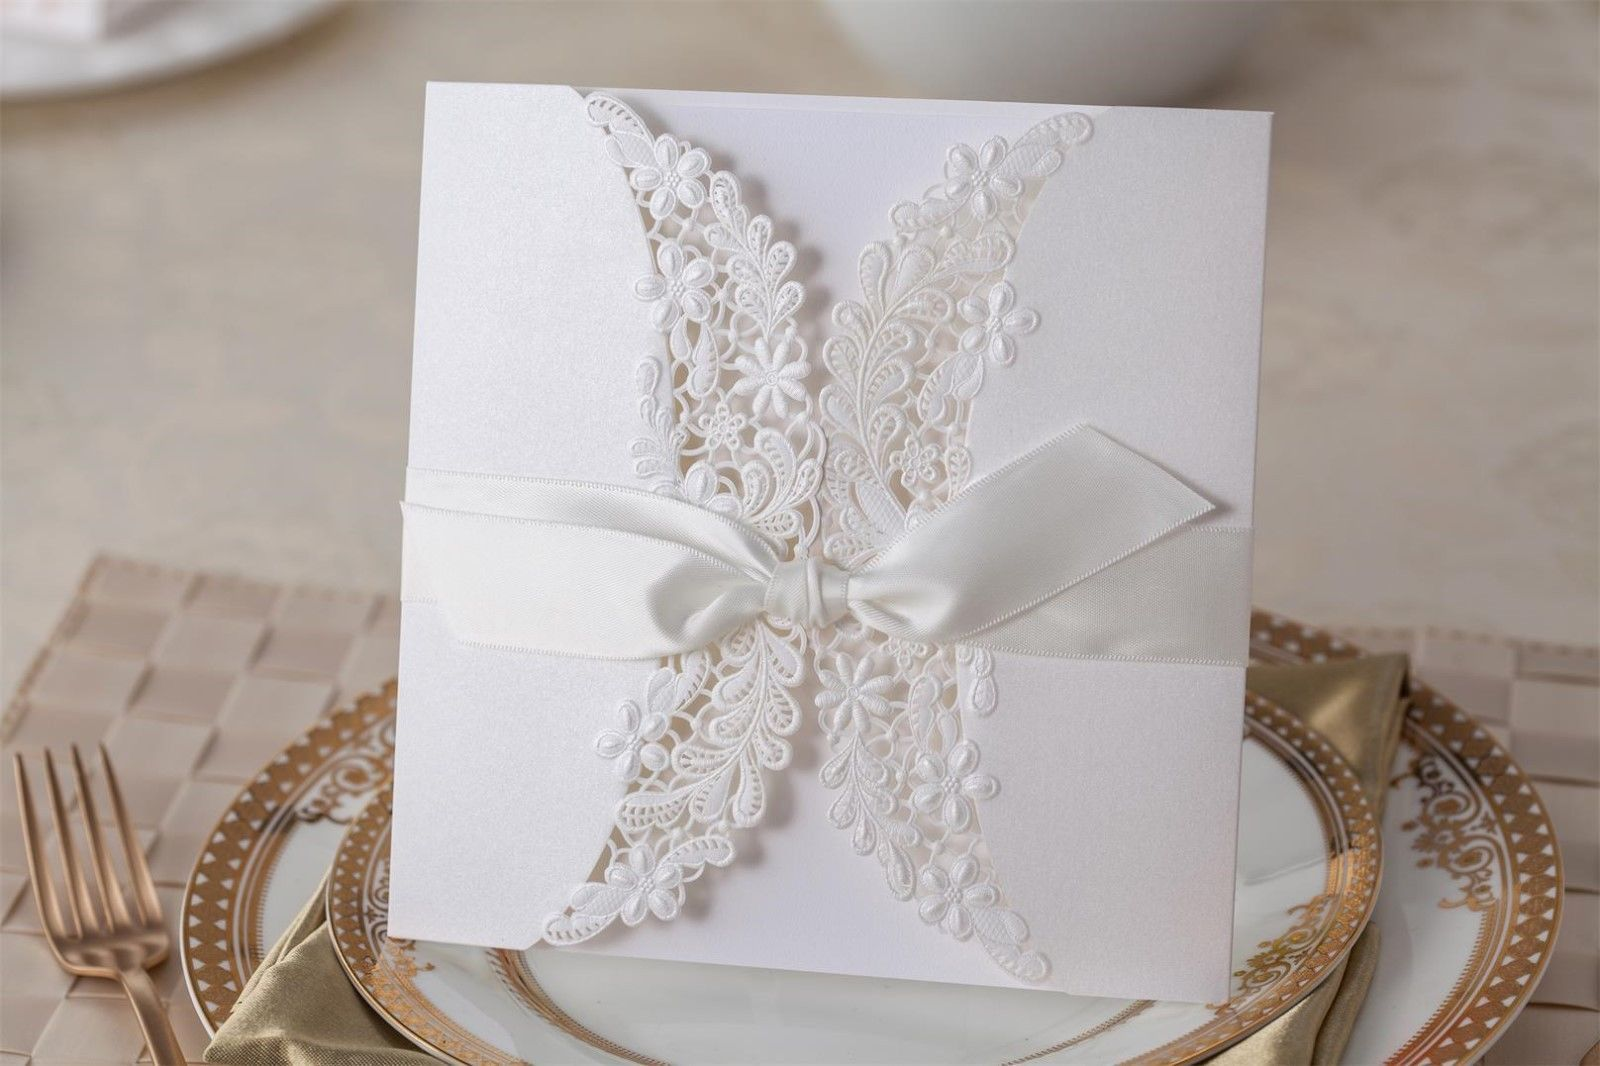 Wedding invitation cards kit PK838_WH, envelopes, seals, personalized printing